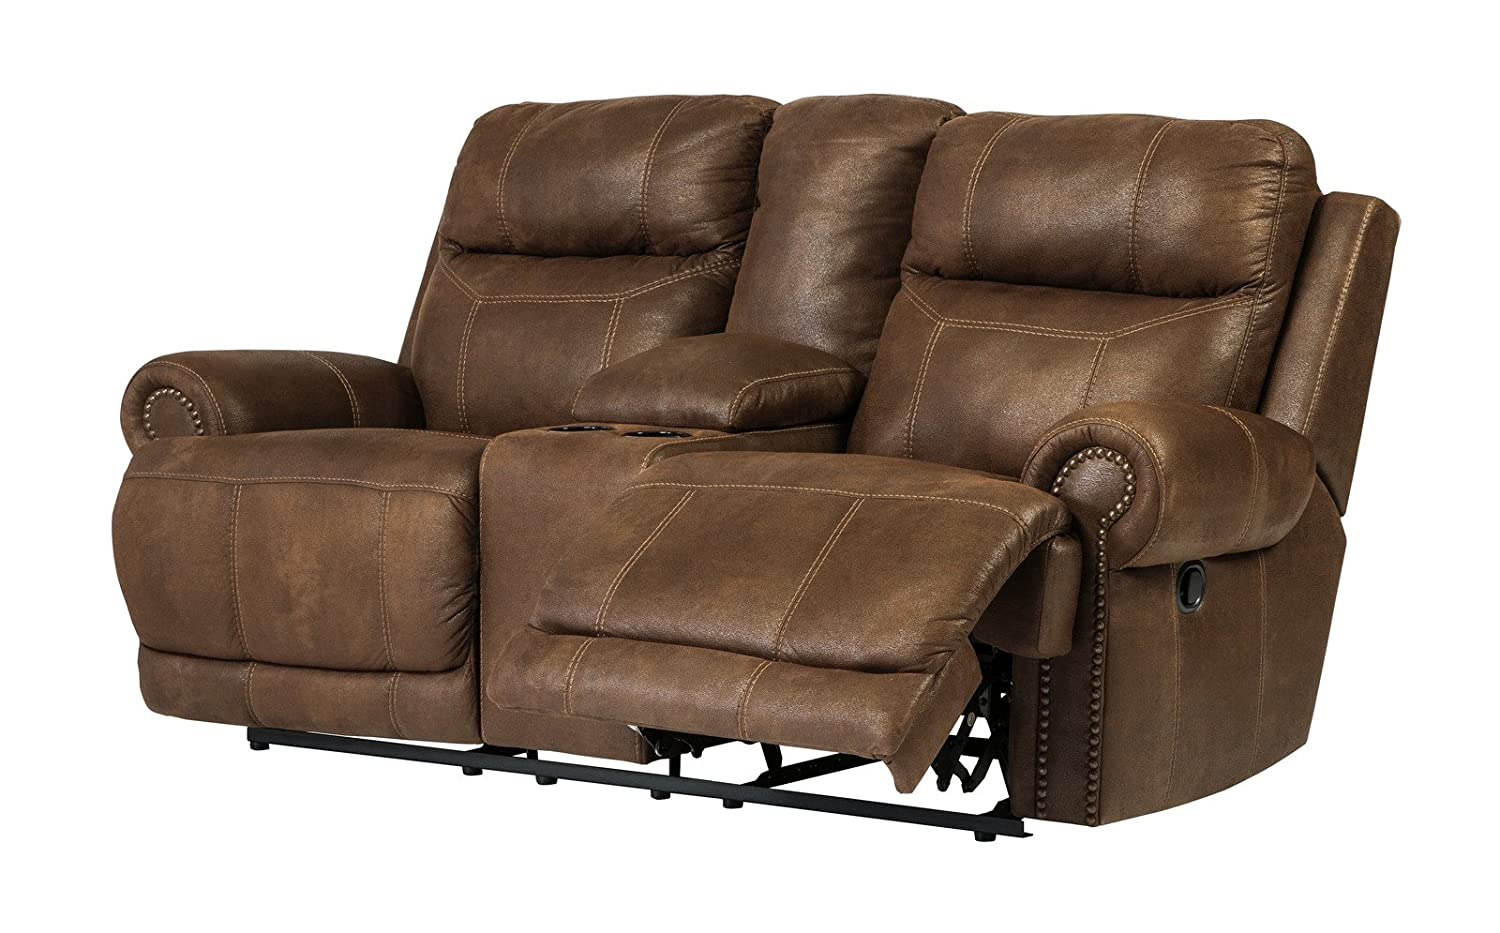 Amazoncom Ashley Furniture Signature Design Austere Recliner